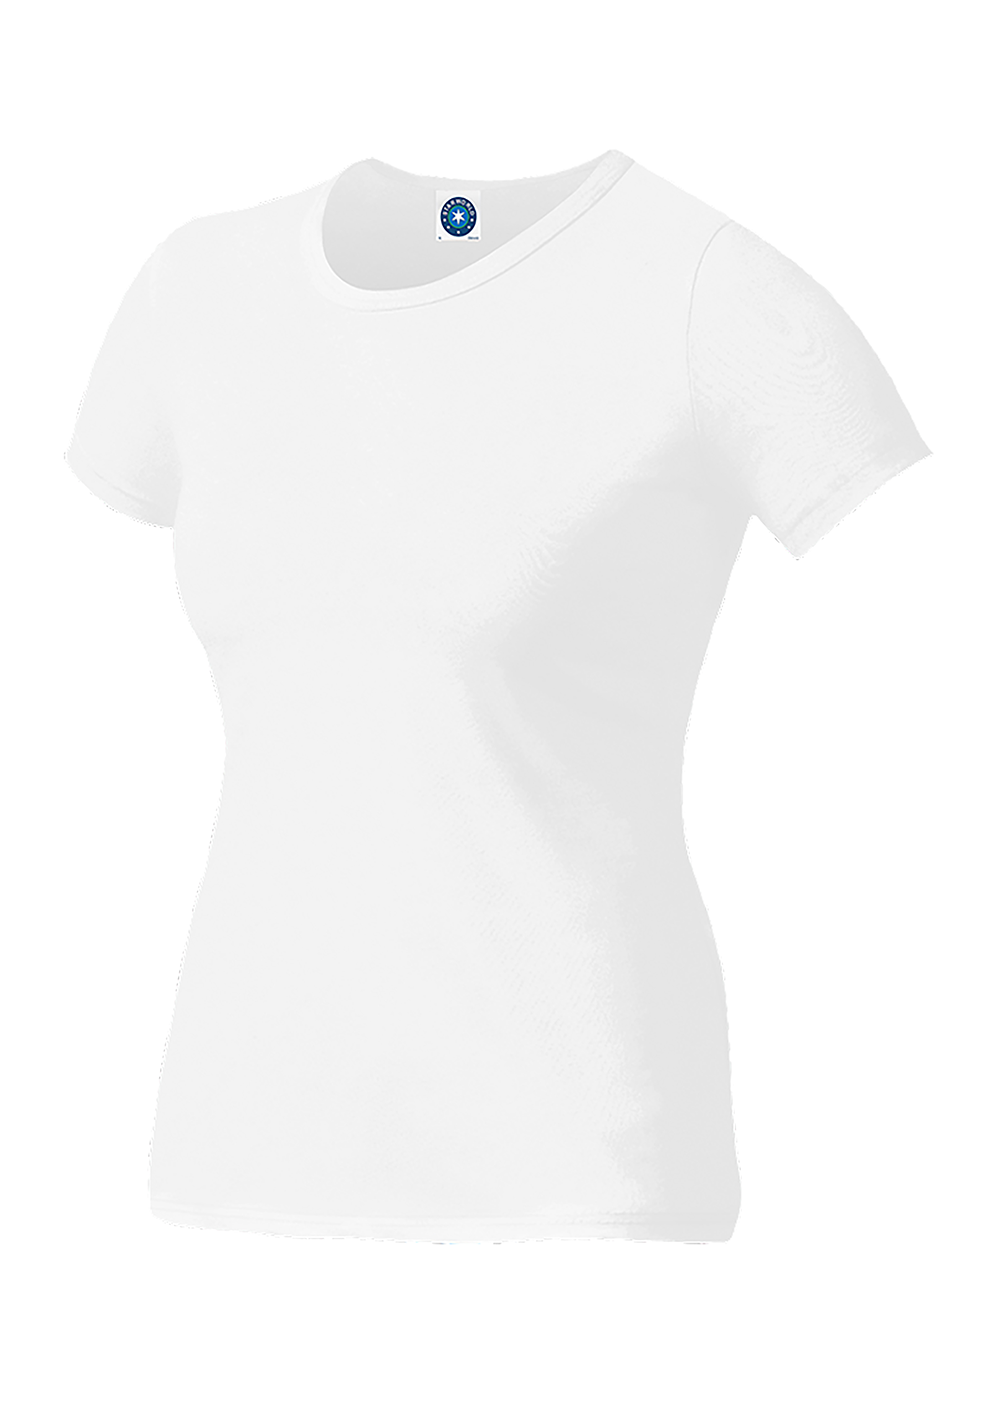 SW350W-03-White.png